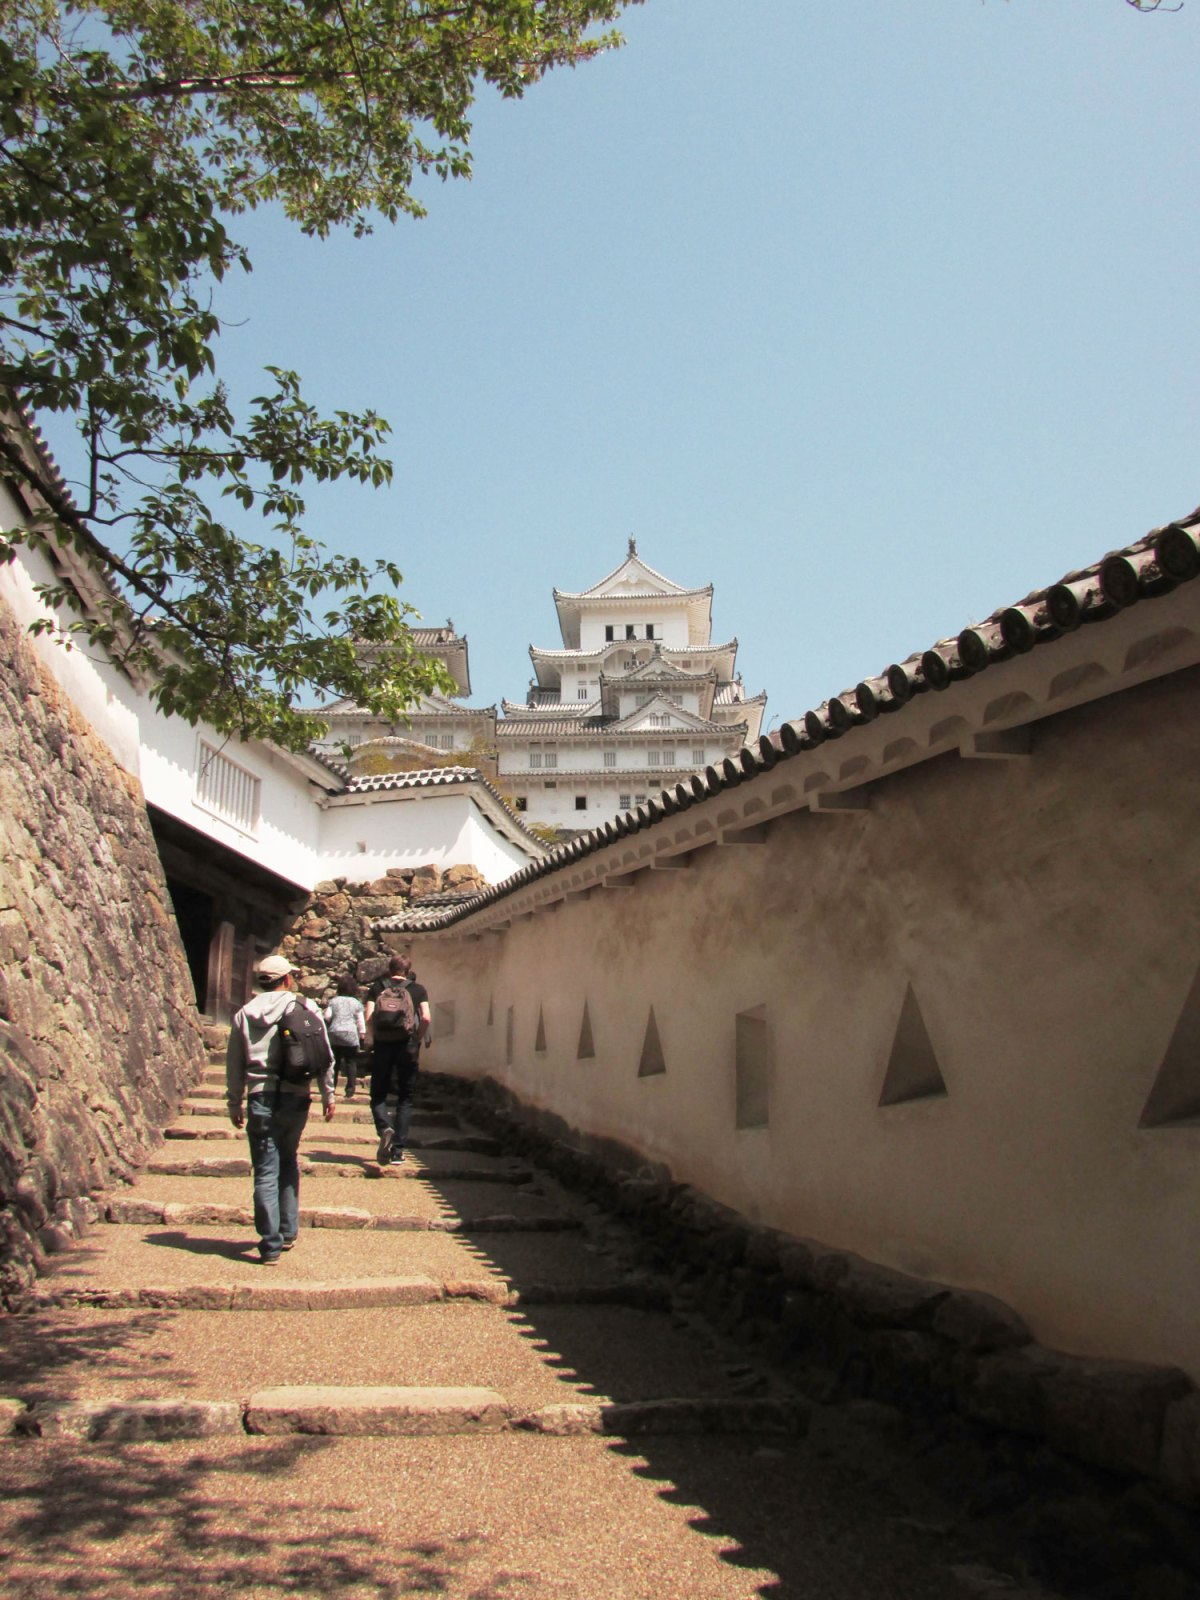 The walk up to Himeji castle from the grounds - How to visit Himeji Castle in a day